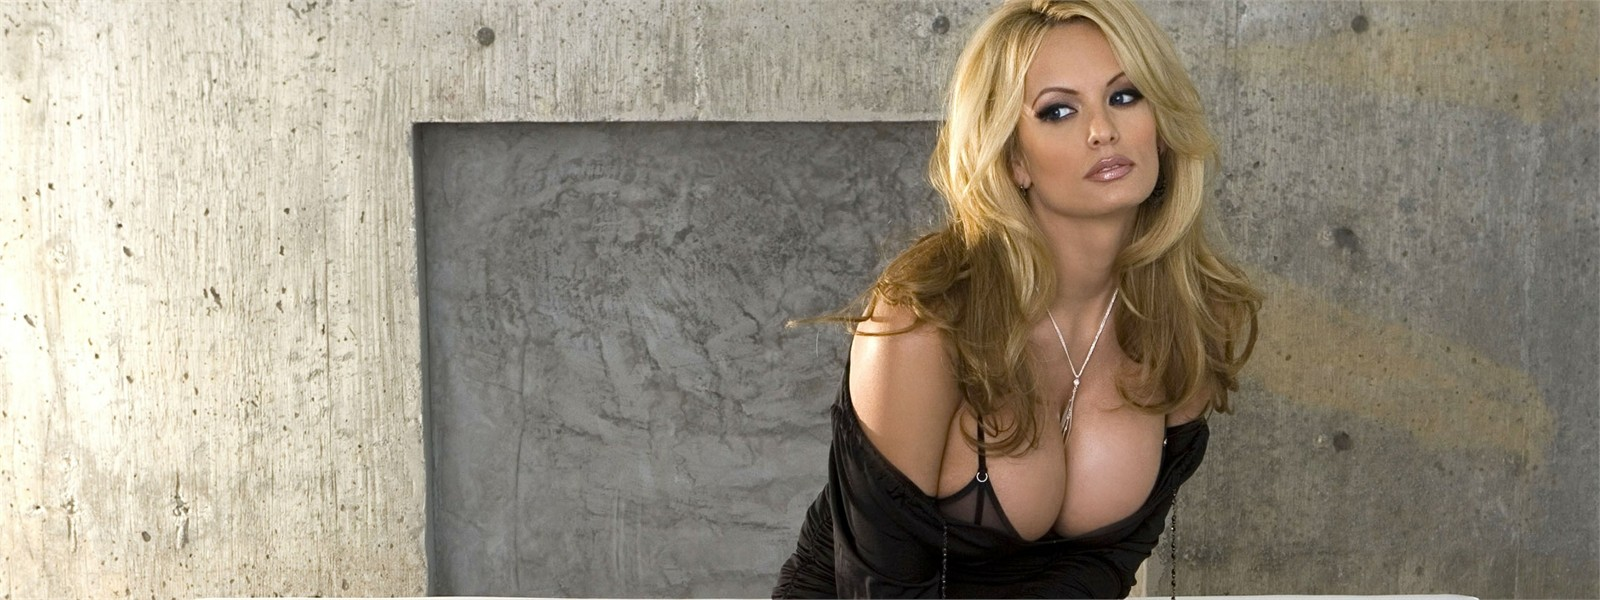 Penthouse sex blonde jill kelly stormy daniels devon